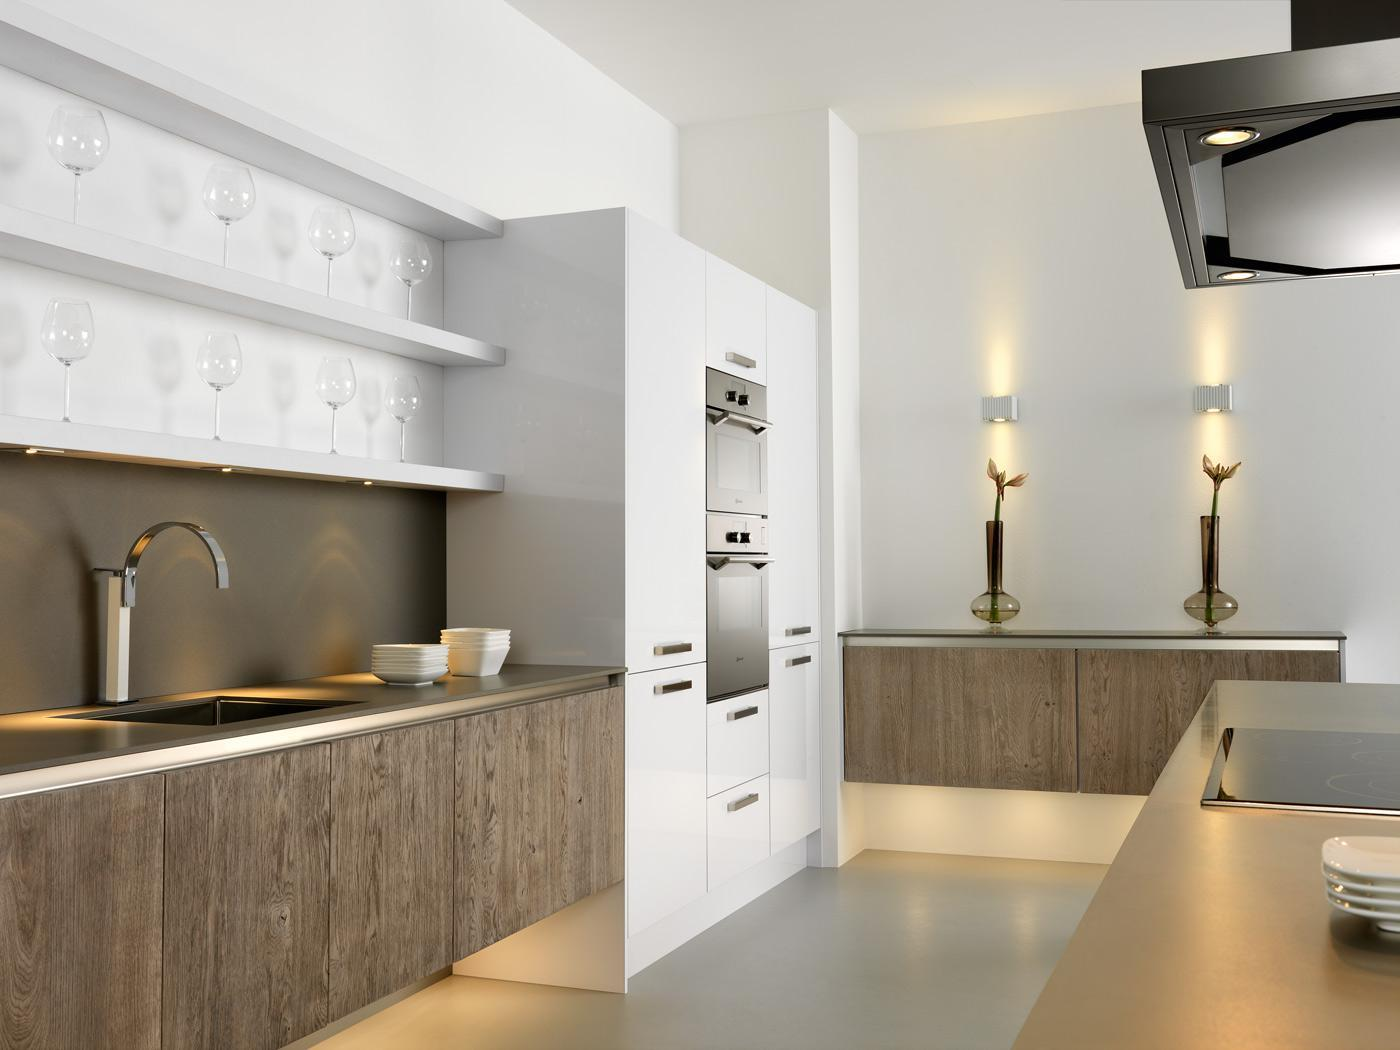 detail of modern handleless kitchen